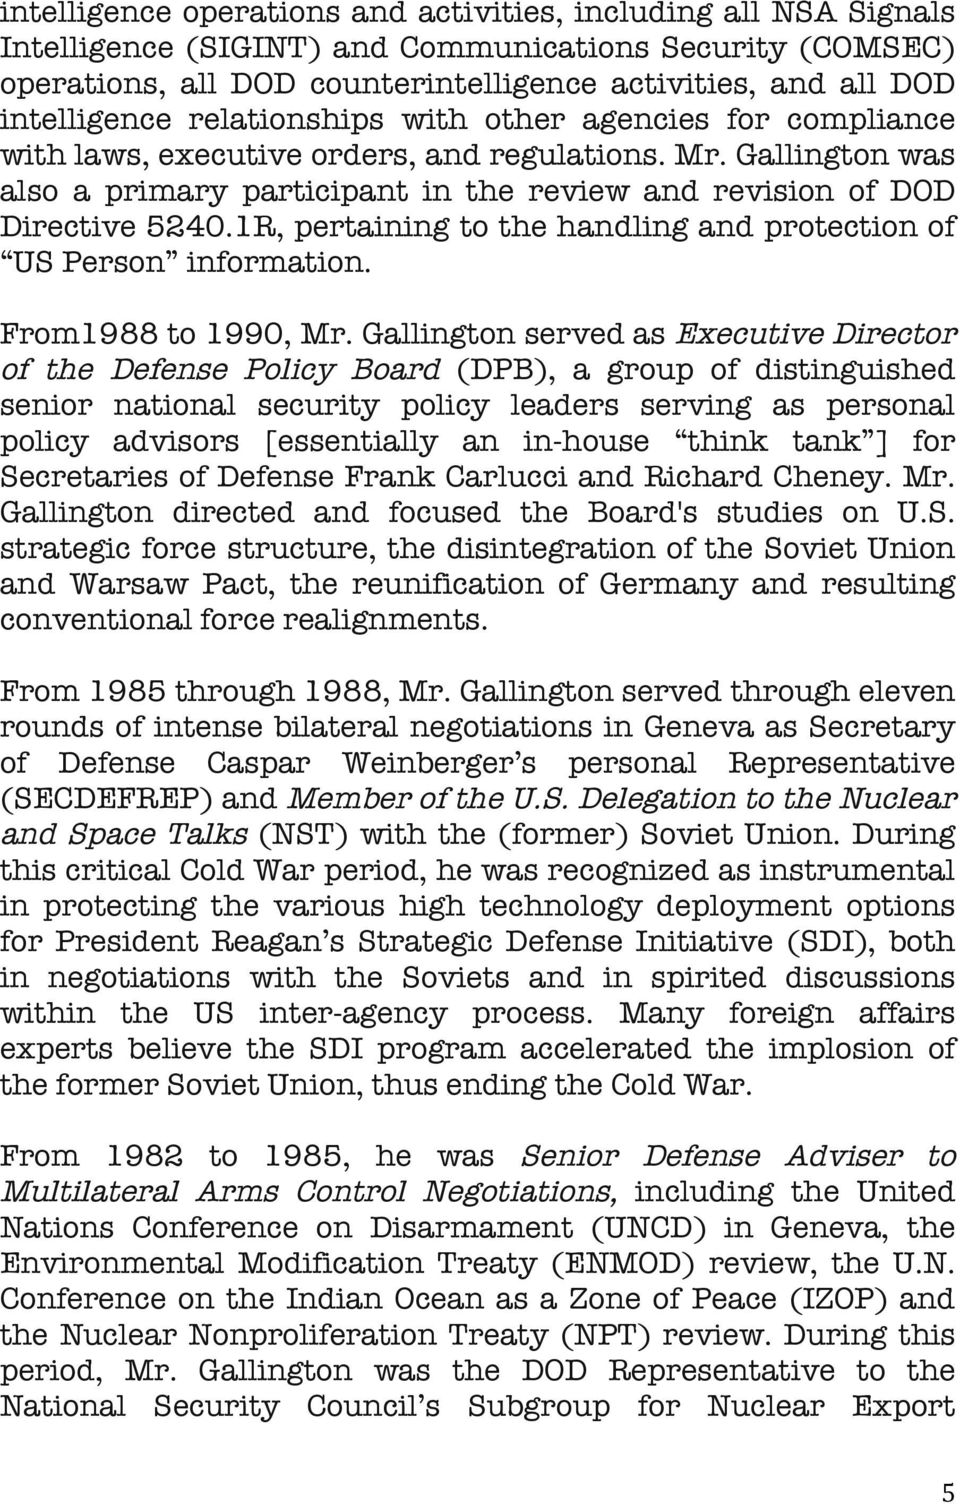 Gallington was also a primary participant in the review and revision of DOD Directive 5240.1R, pertaining to the handling and protection of US Person information. From1988 to 1990, Mr.